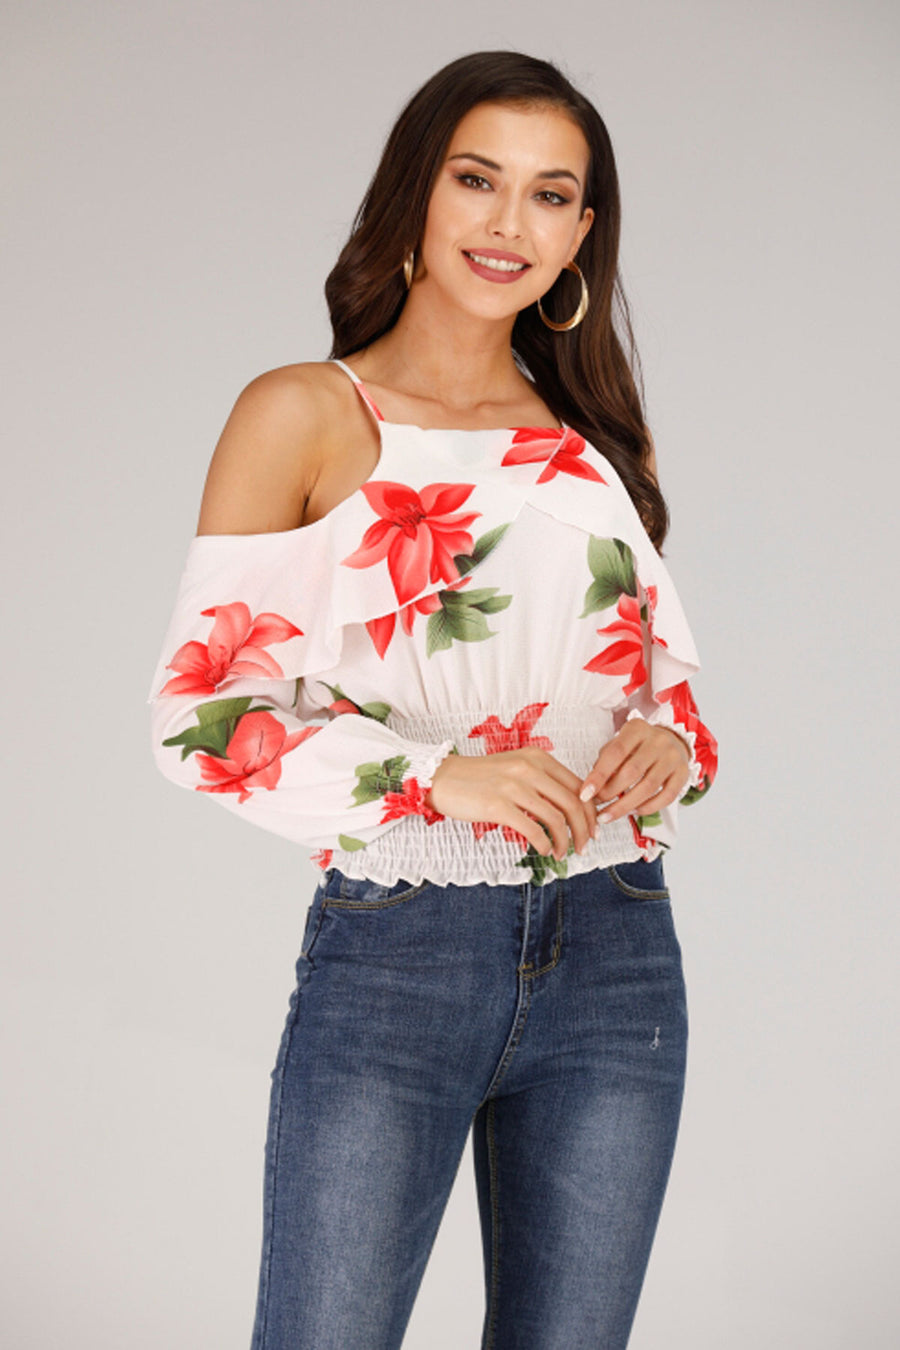 COLD SHOULDER FLORAL PRINTED TOP - Mantra Pakistan